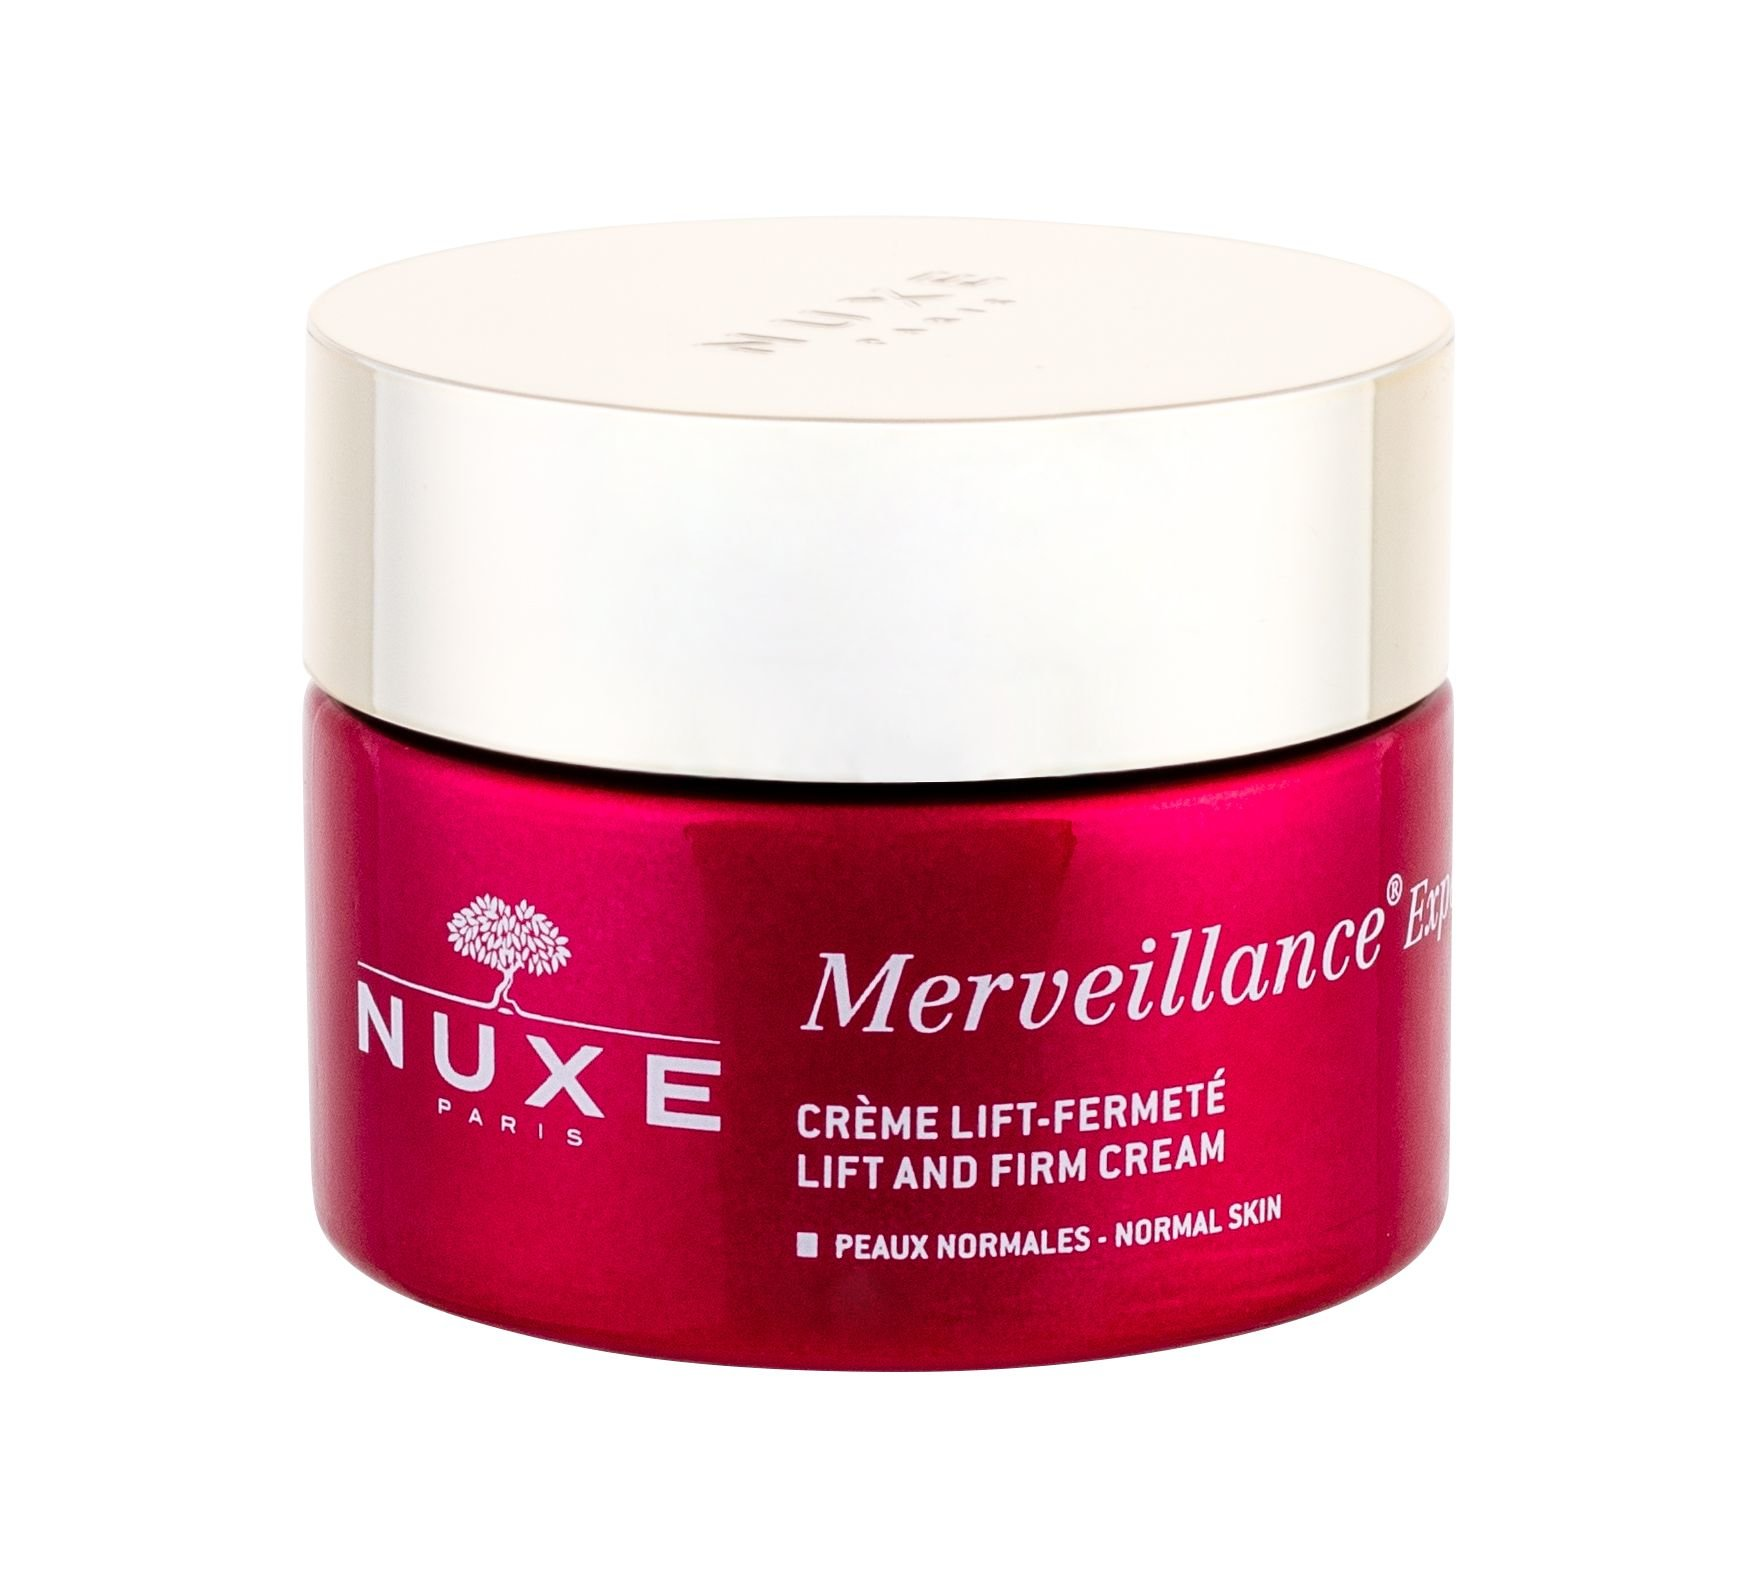 NUXE Merveillance Expert Day Cream 50ml